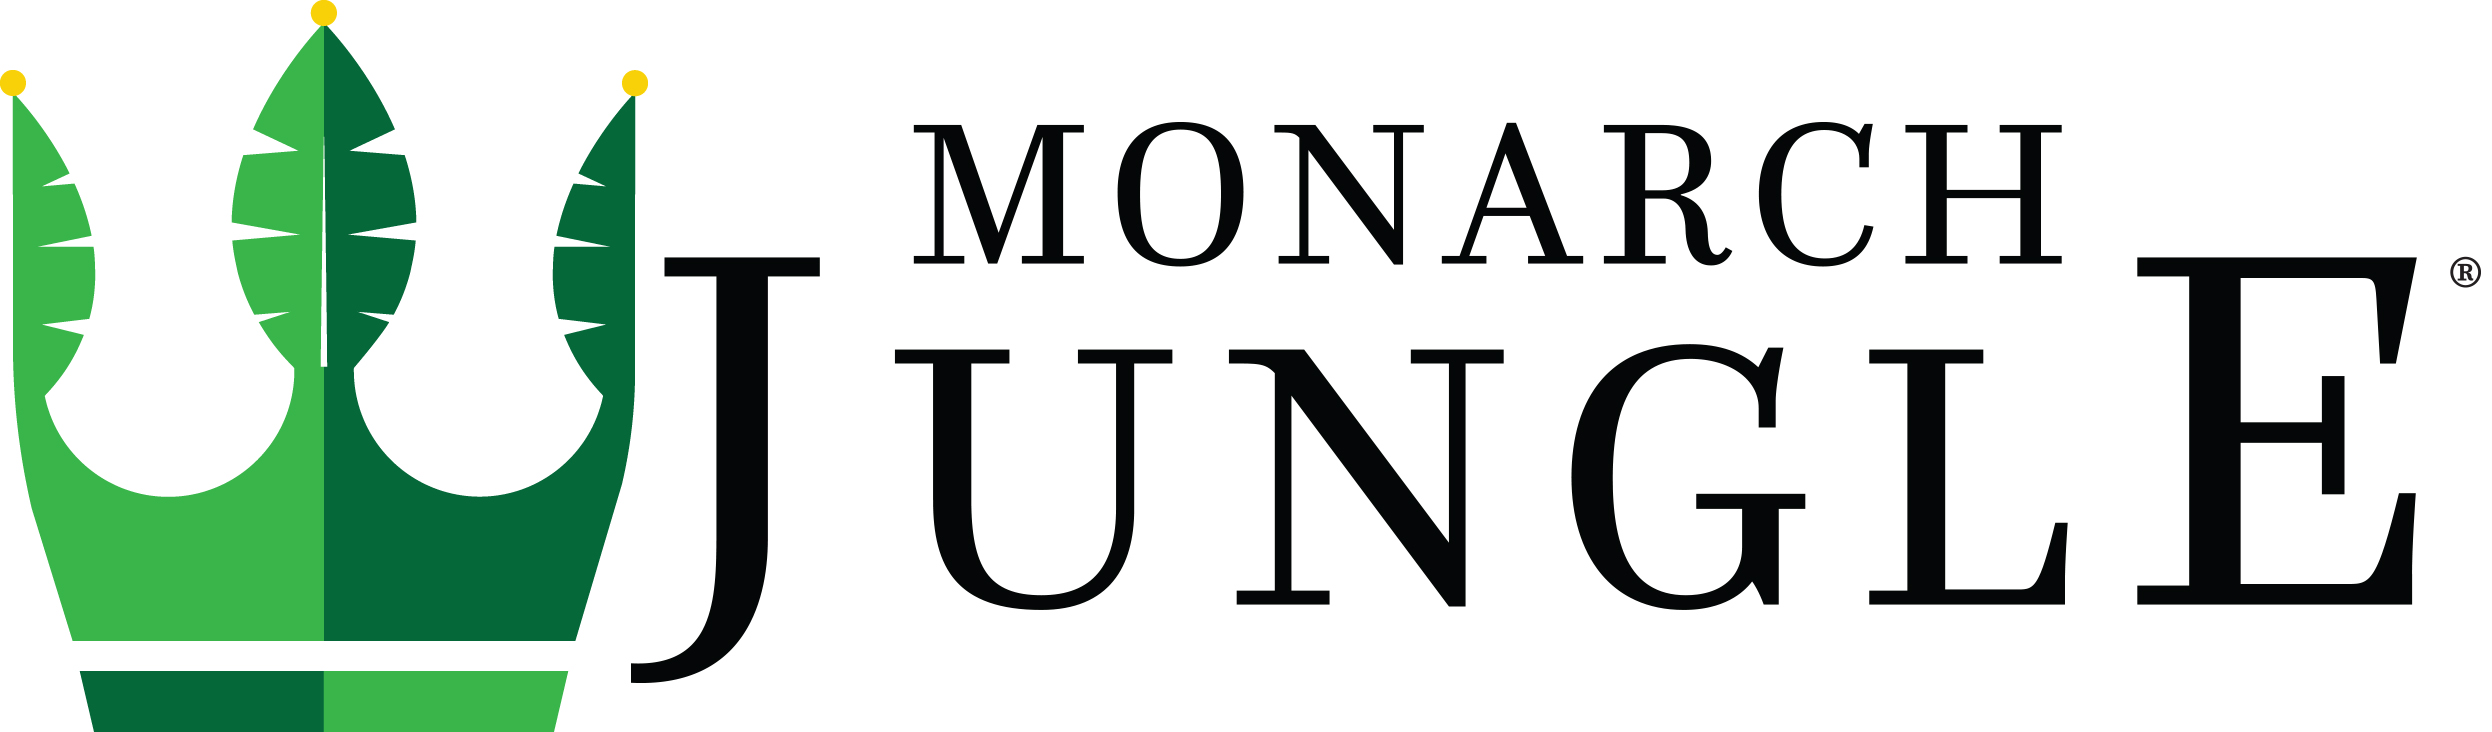 monarchjungle-logo.jpg